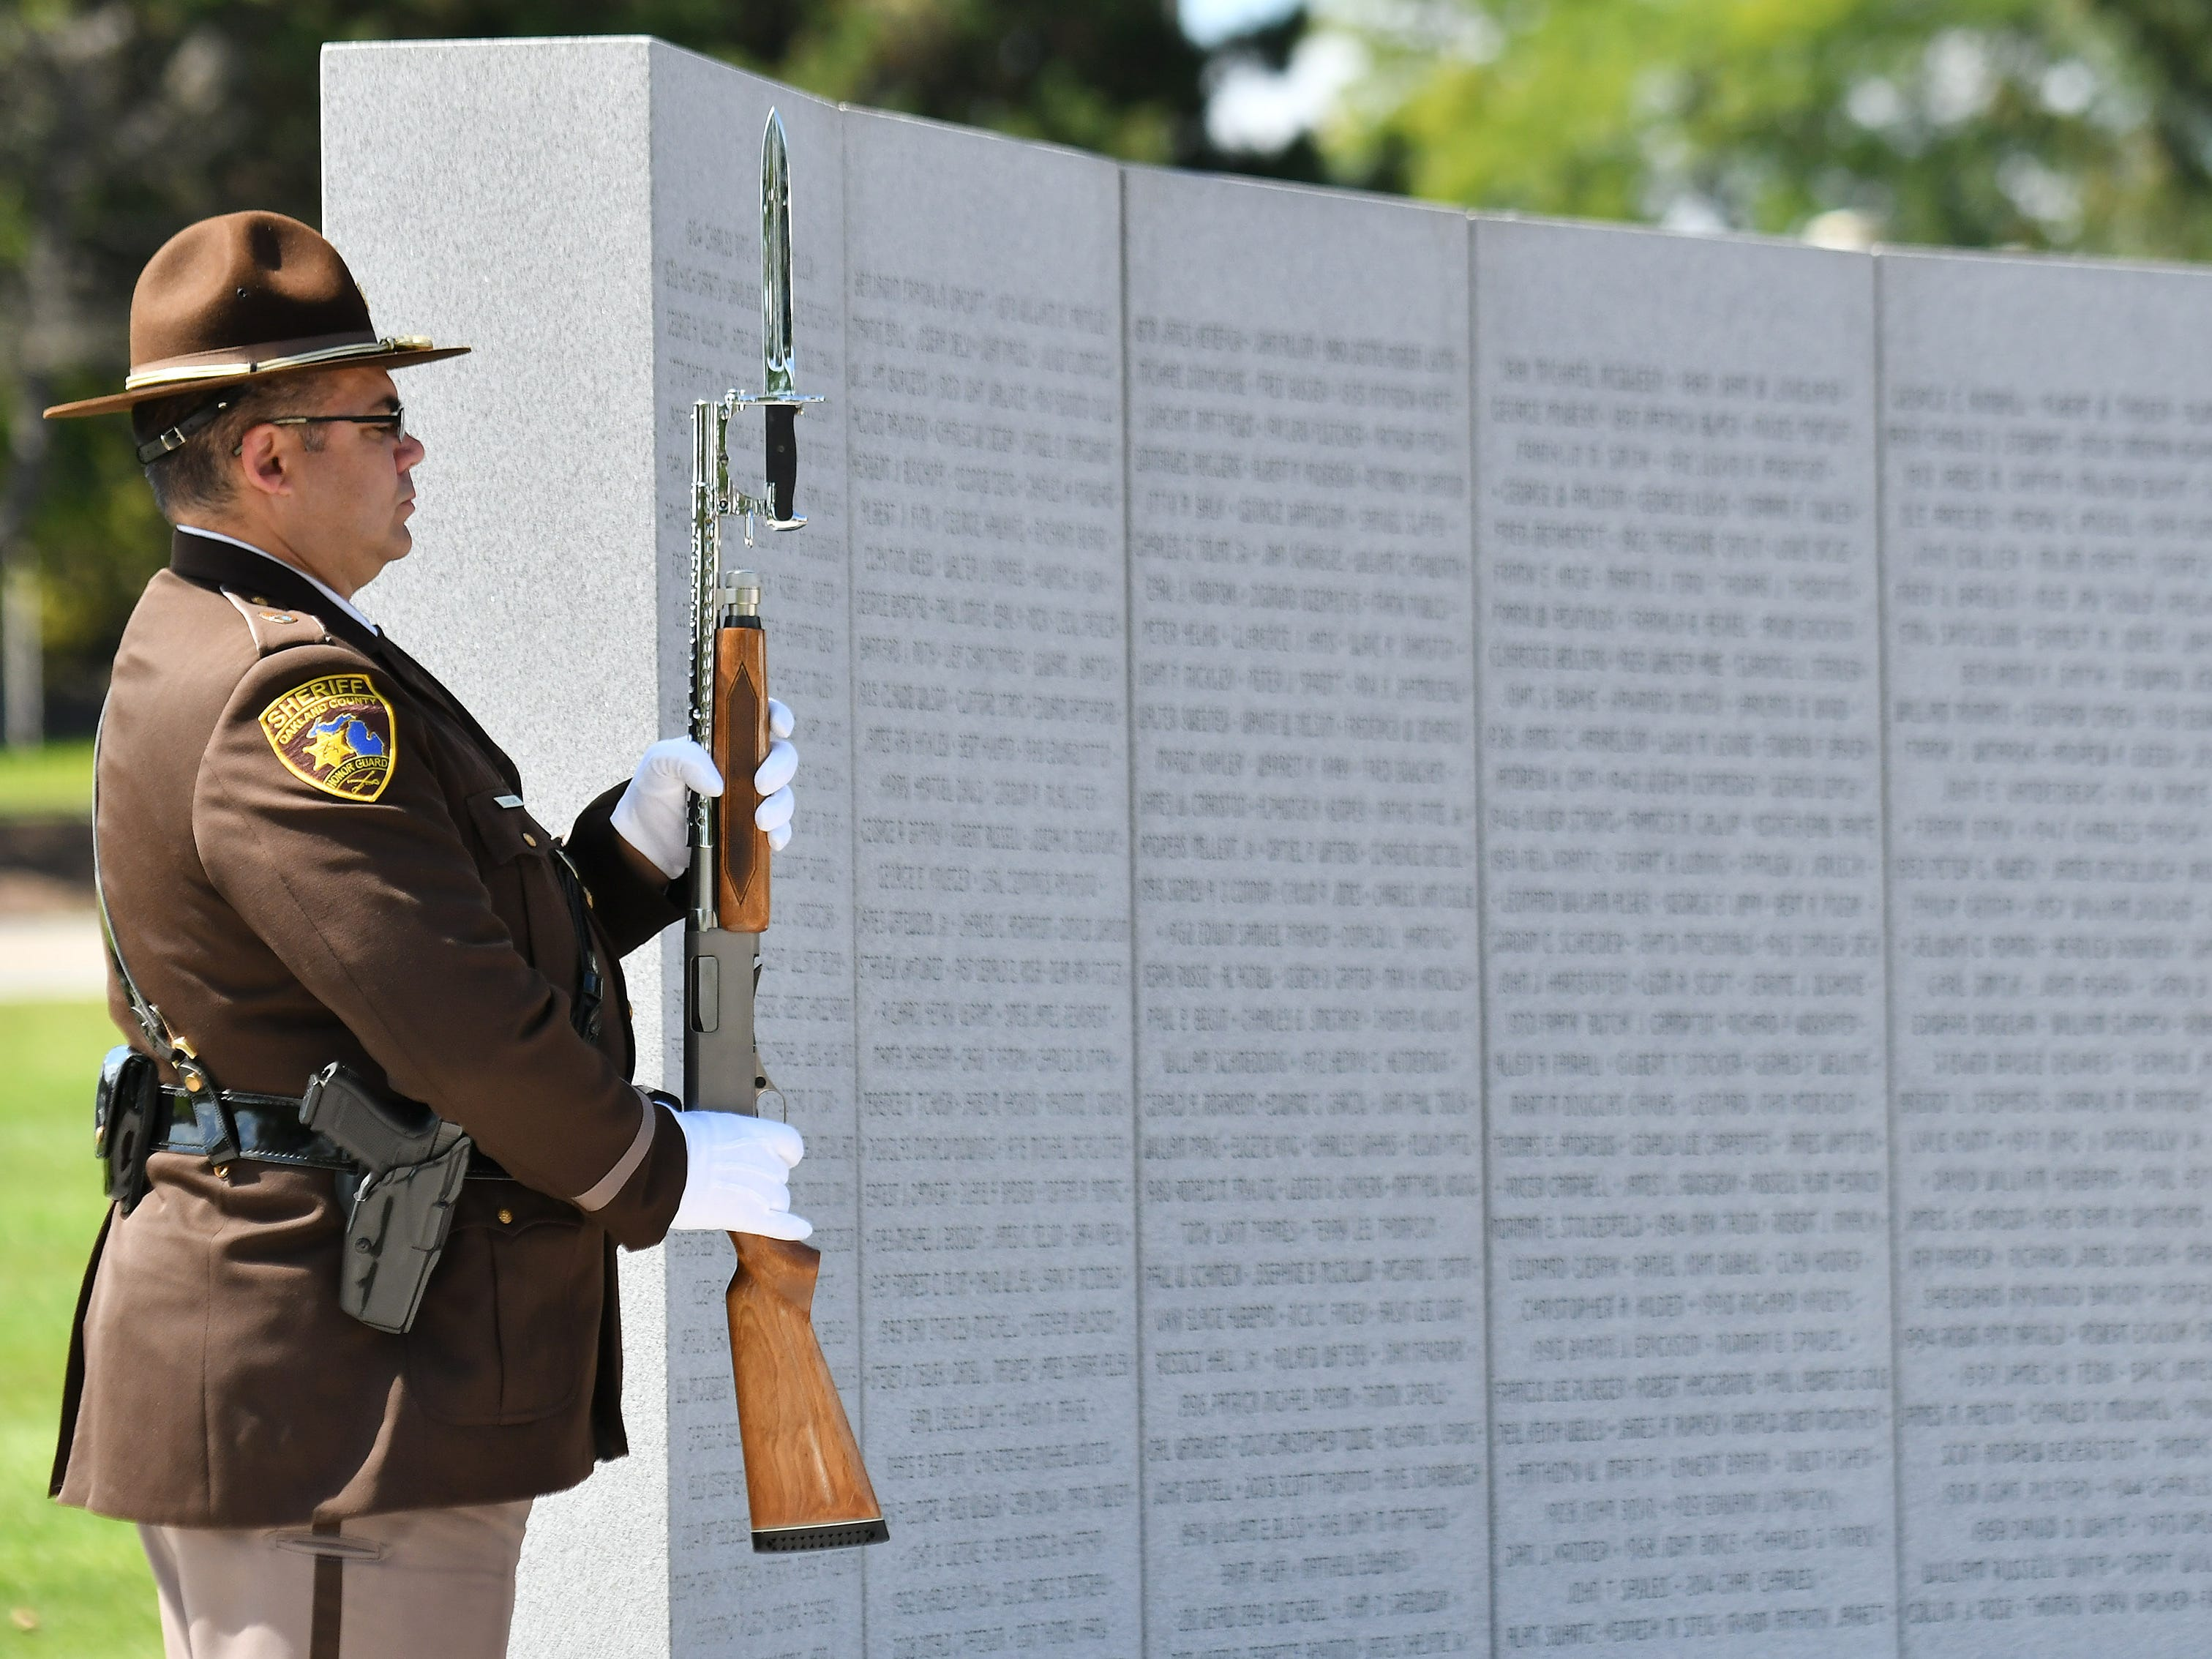 An Oakland County Sheriff deputy stands at attention near the wall with the names of the fallen during the ceremony.